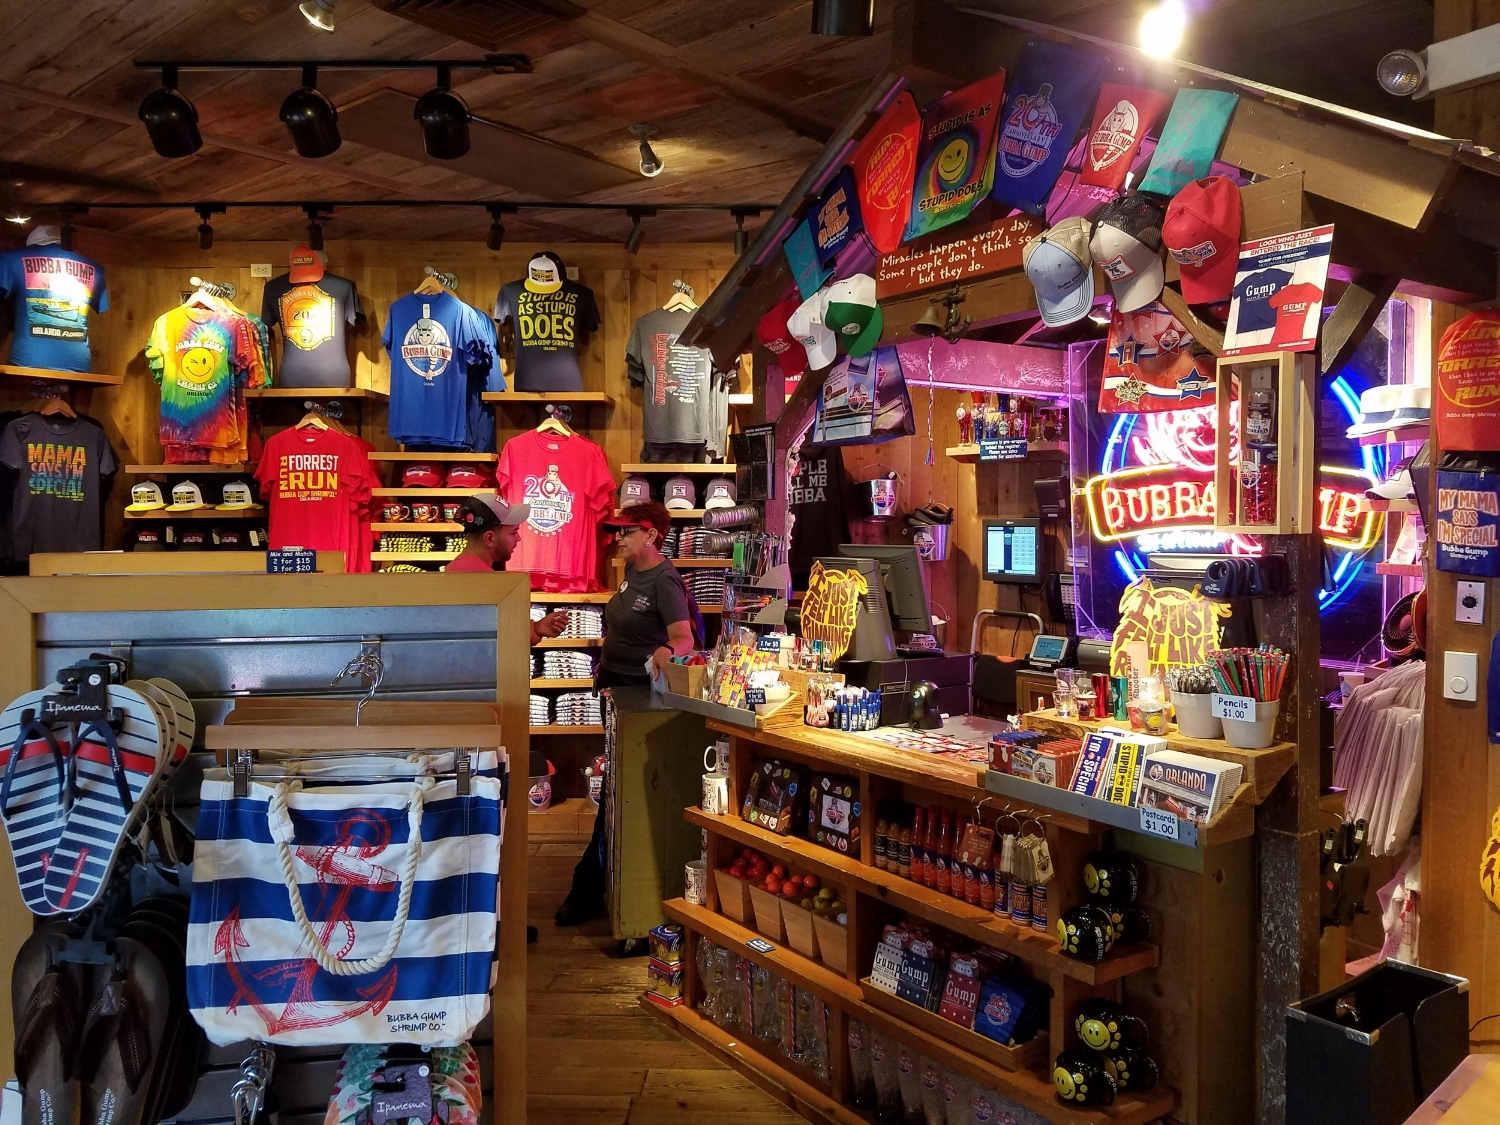 Bubba Gump Shrimp Co. retail store counter and merchandise